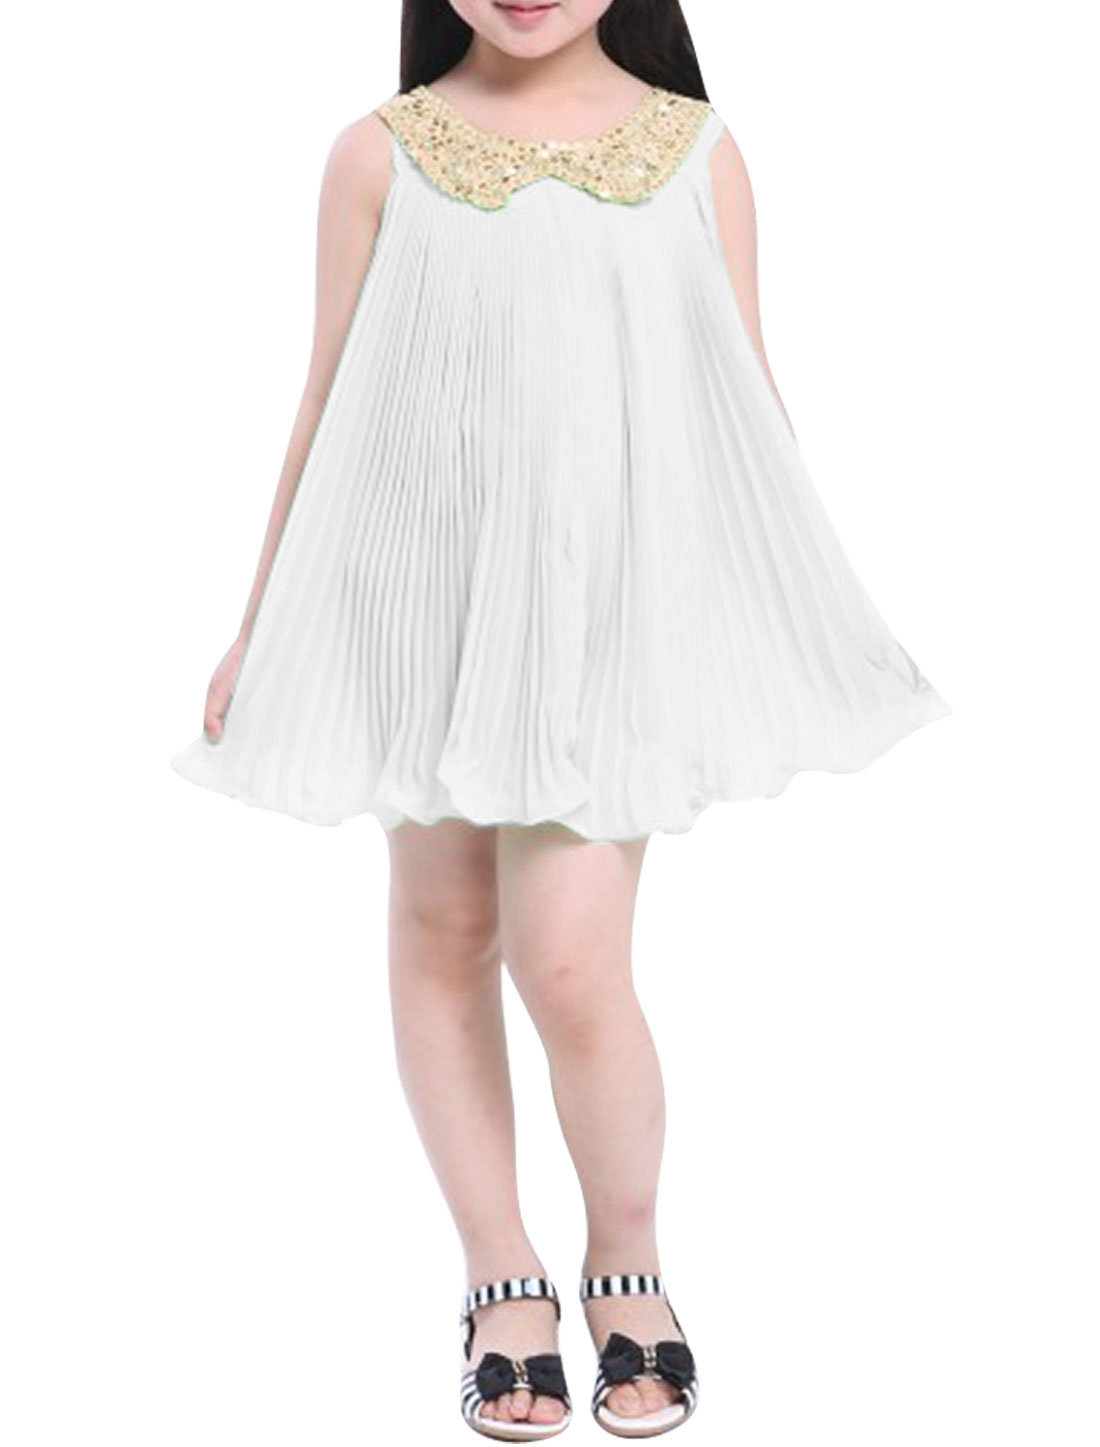 White Color Sleeveless Sequined Detail Babydoll Dress for Girl 8